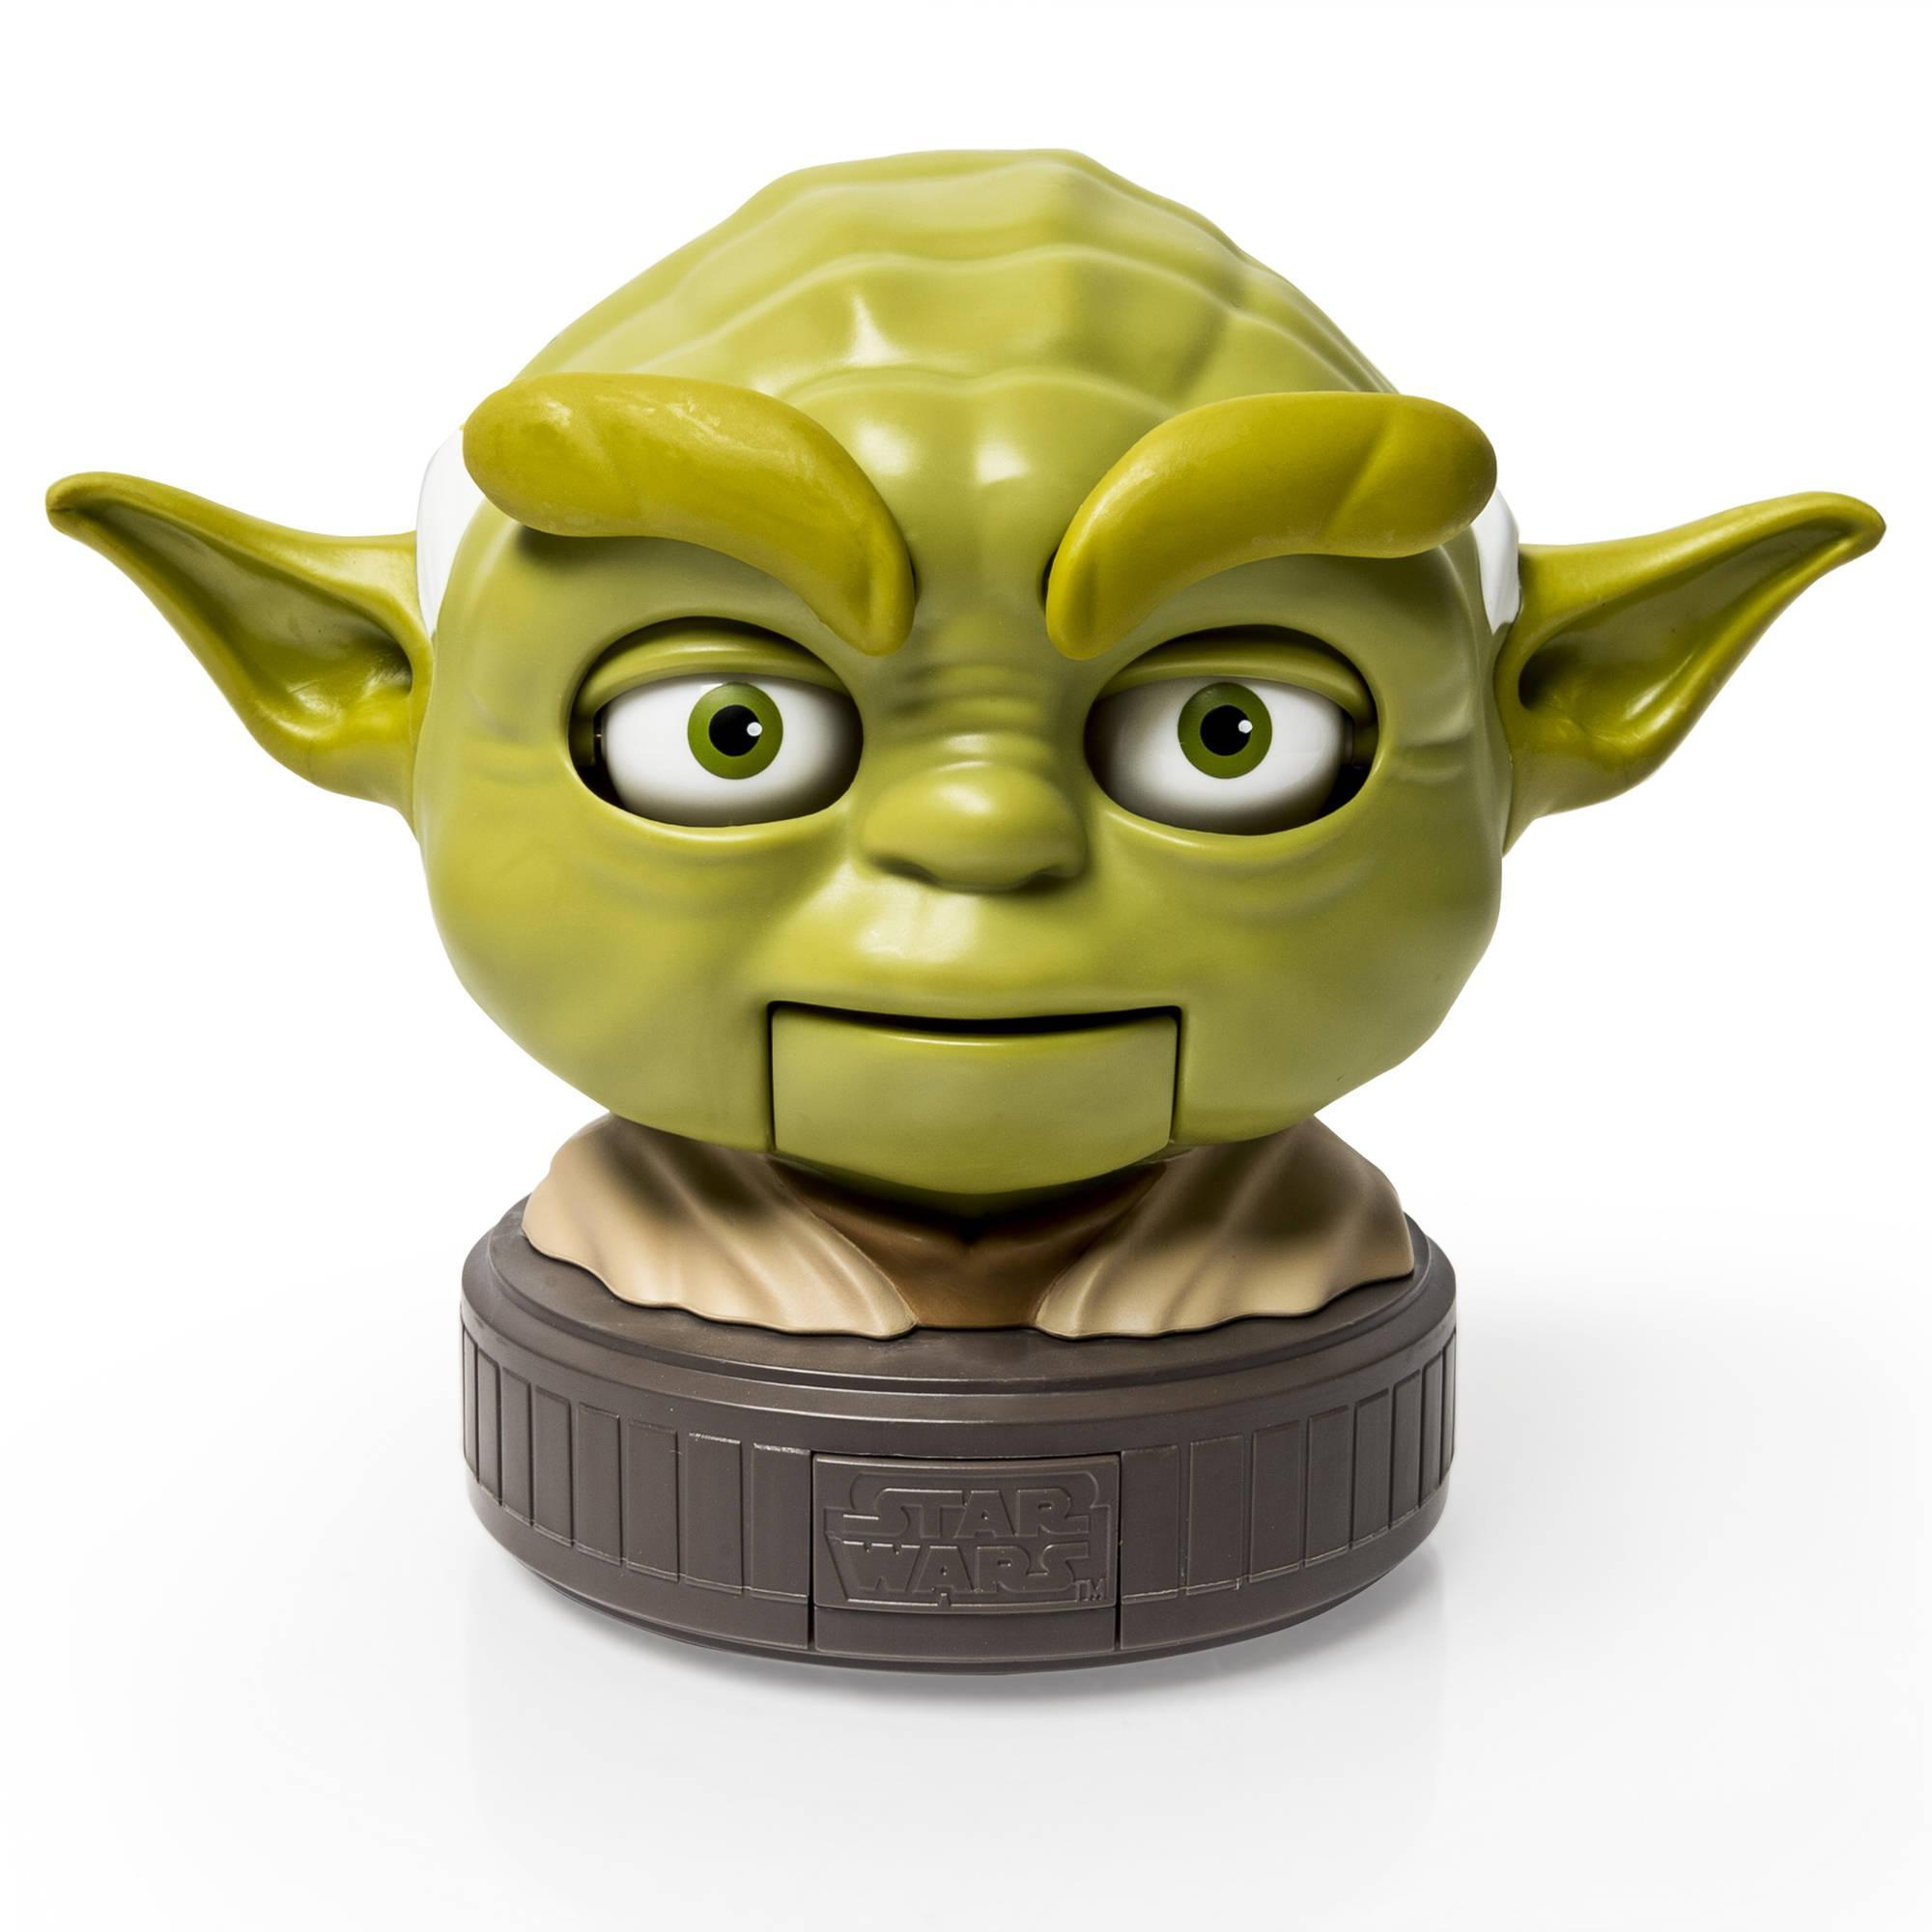 Star Wars Jedi Talker Yoda Just $10.80 Down From $24.99 At Walmart!